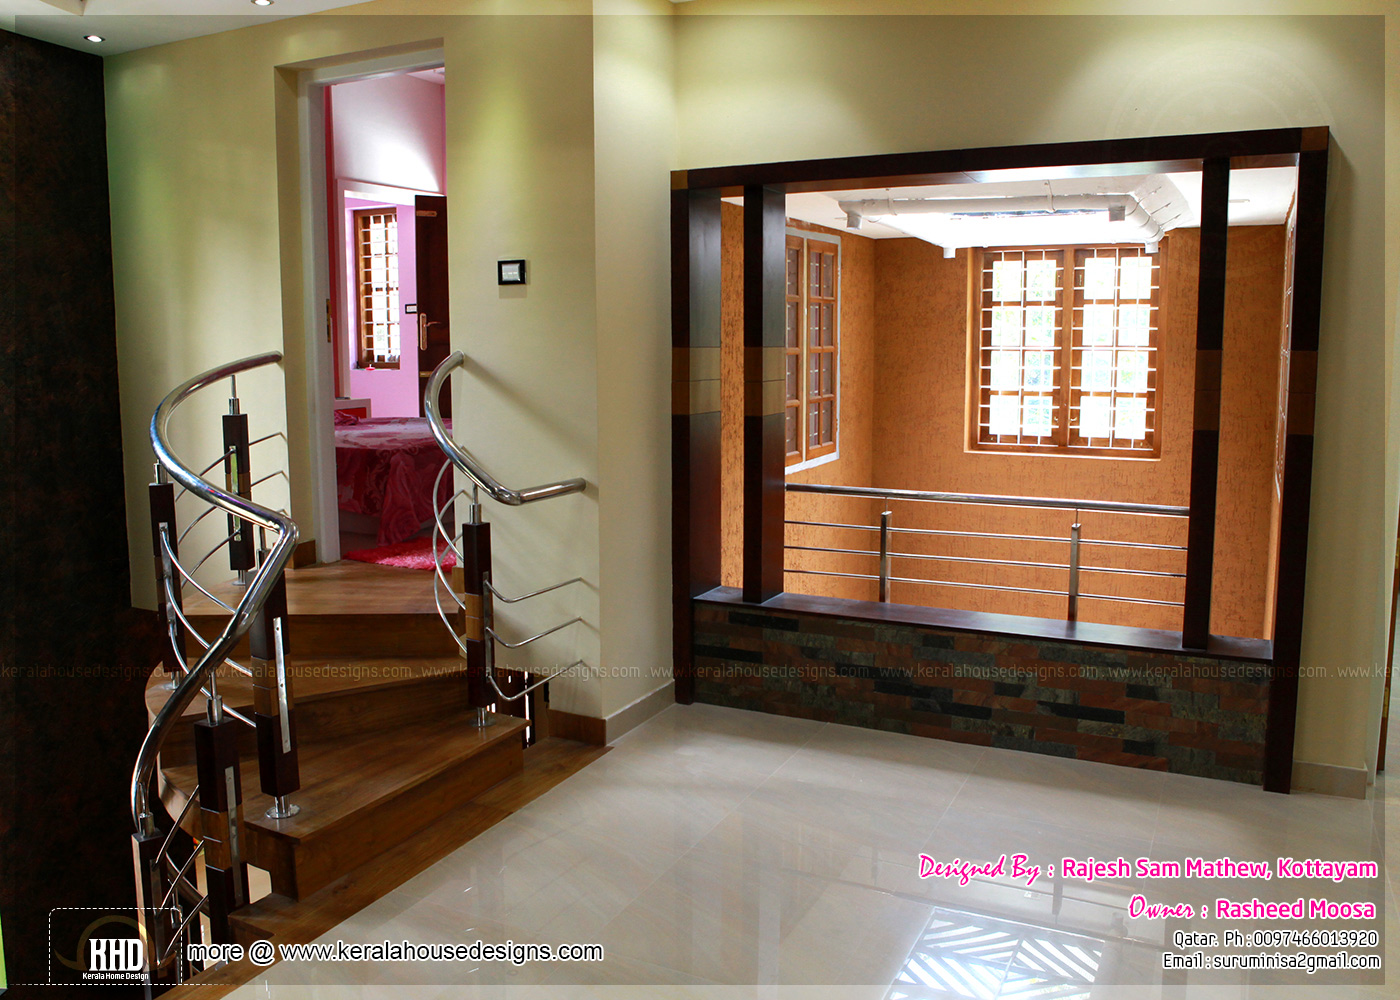 Kerala interior design with photos kerala home design for House plans with photos in kerala style